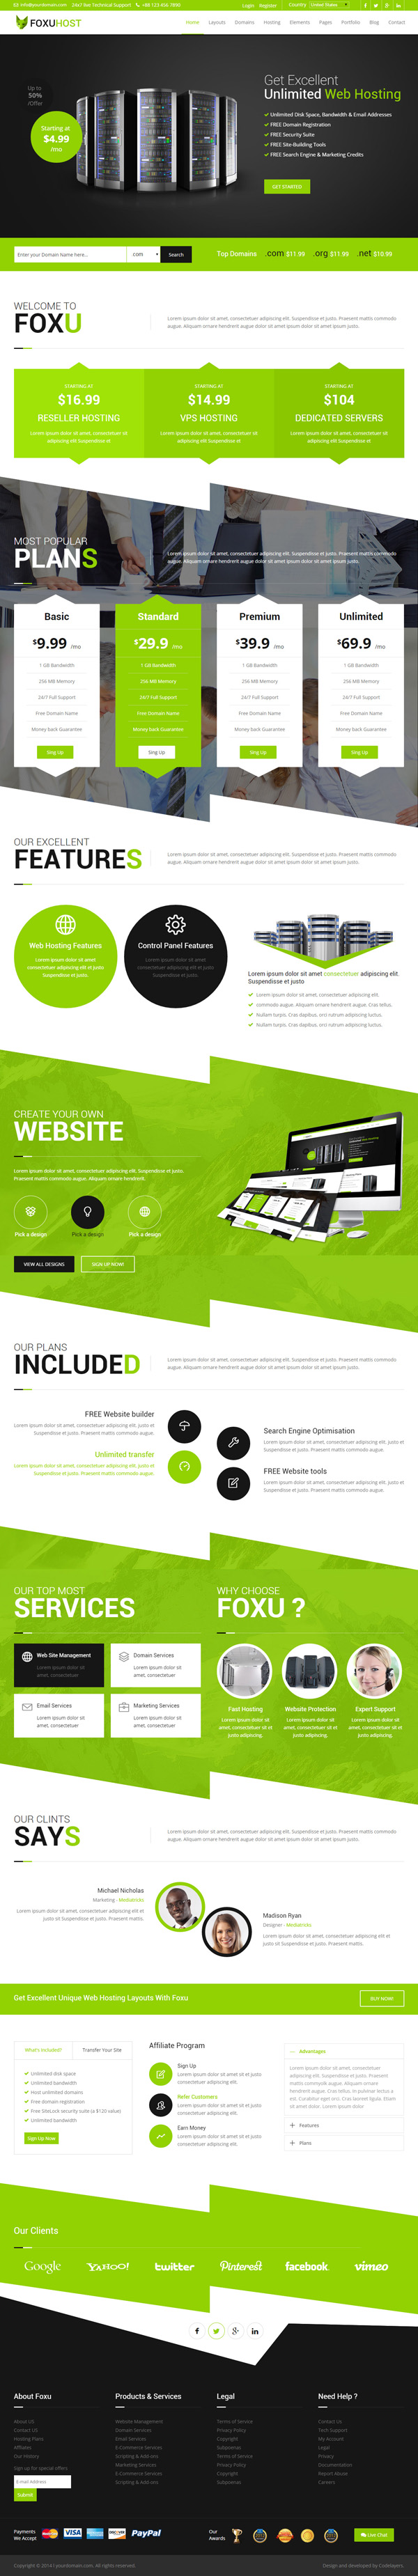 modern responsive html5 css3 website templates design graphic design junction. Black Bedroom Furniture Sets. Home Design Ideas